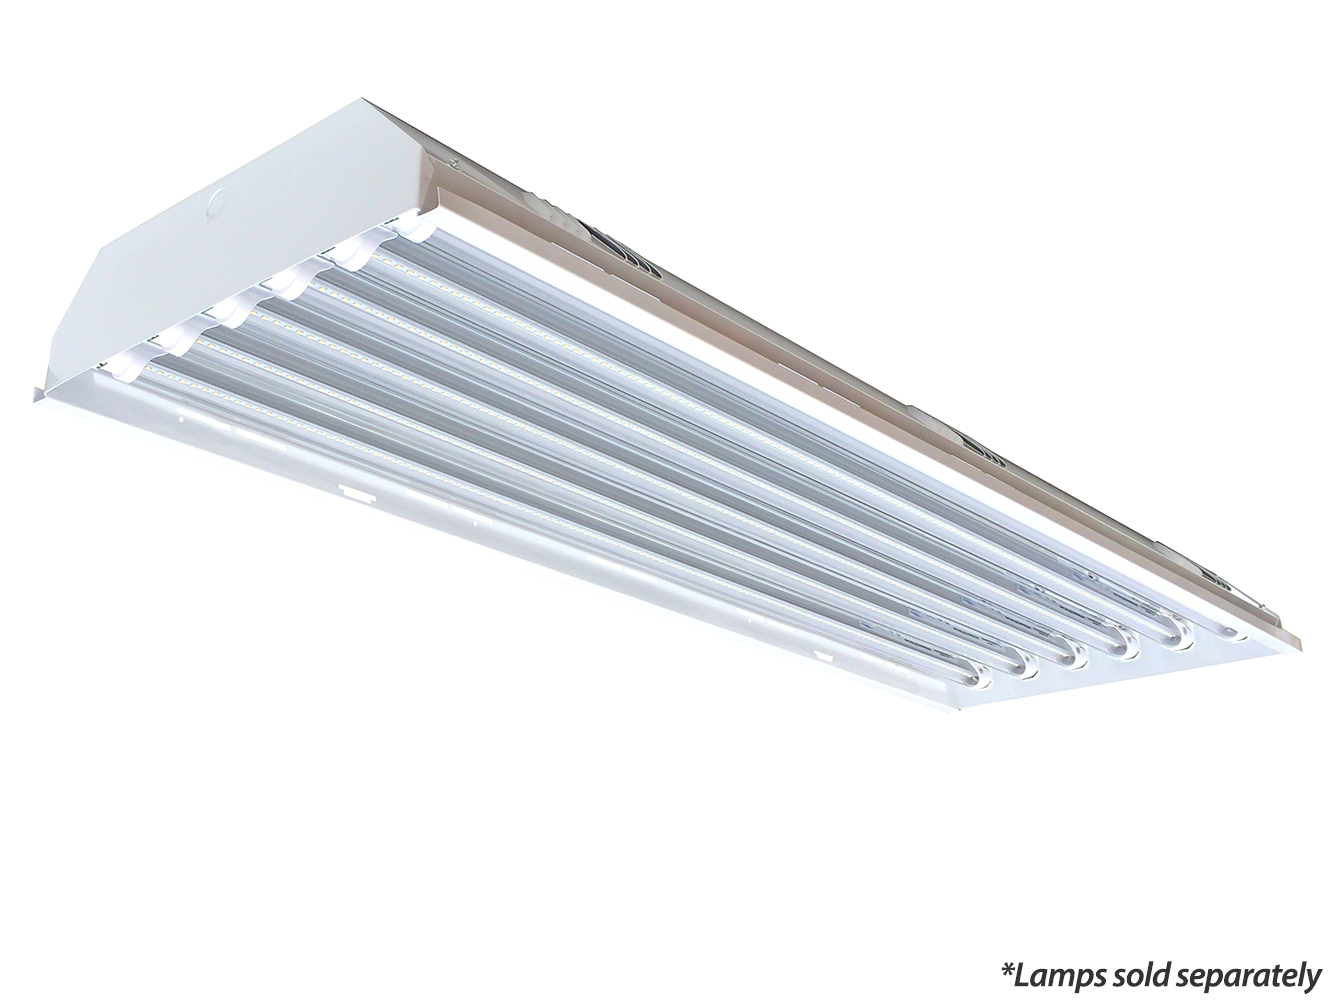 Triton LED T8 Low Bay - 6 Lamp - 13071556